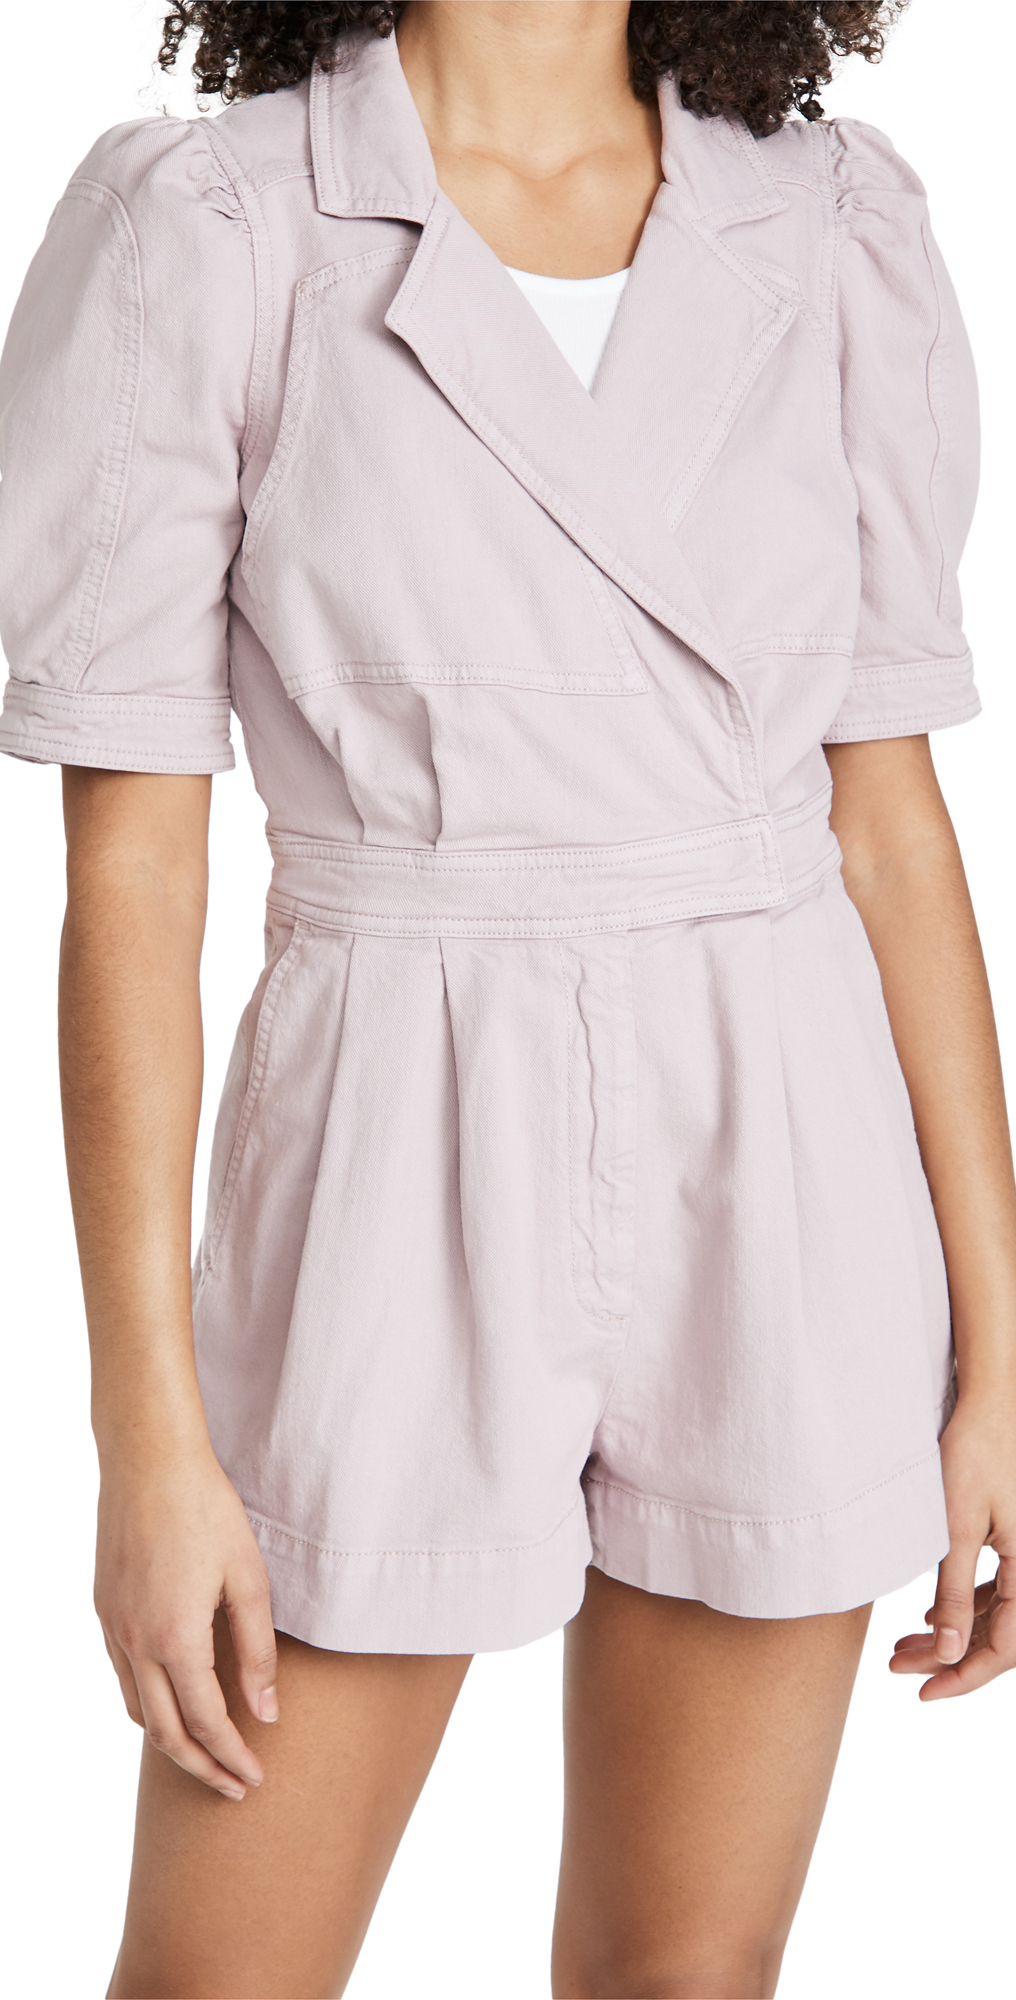 7 For All Mankind Seamed Romper